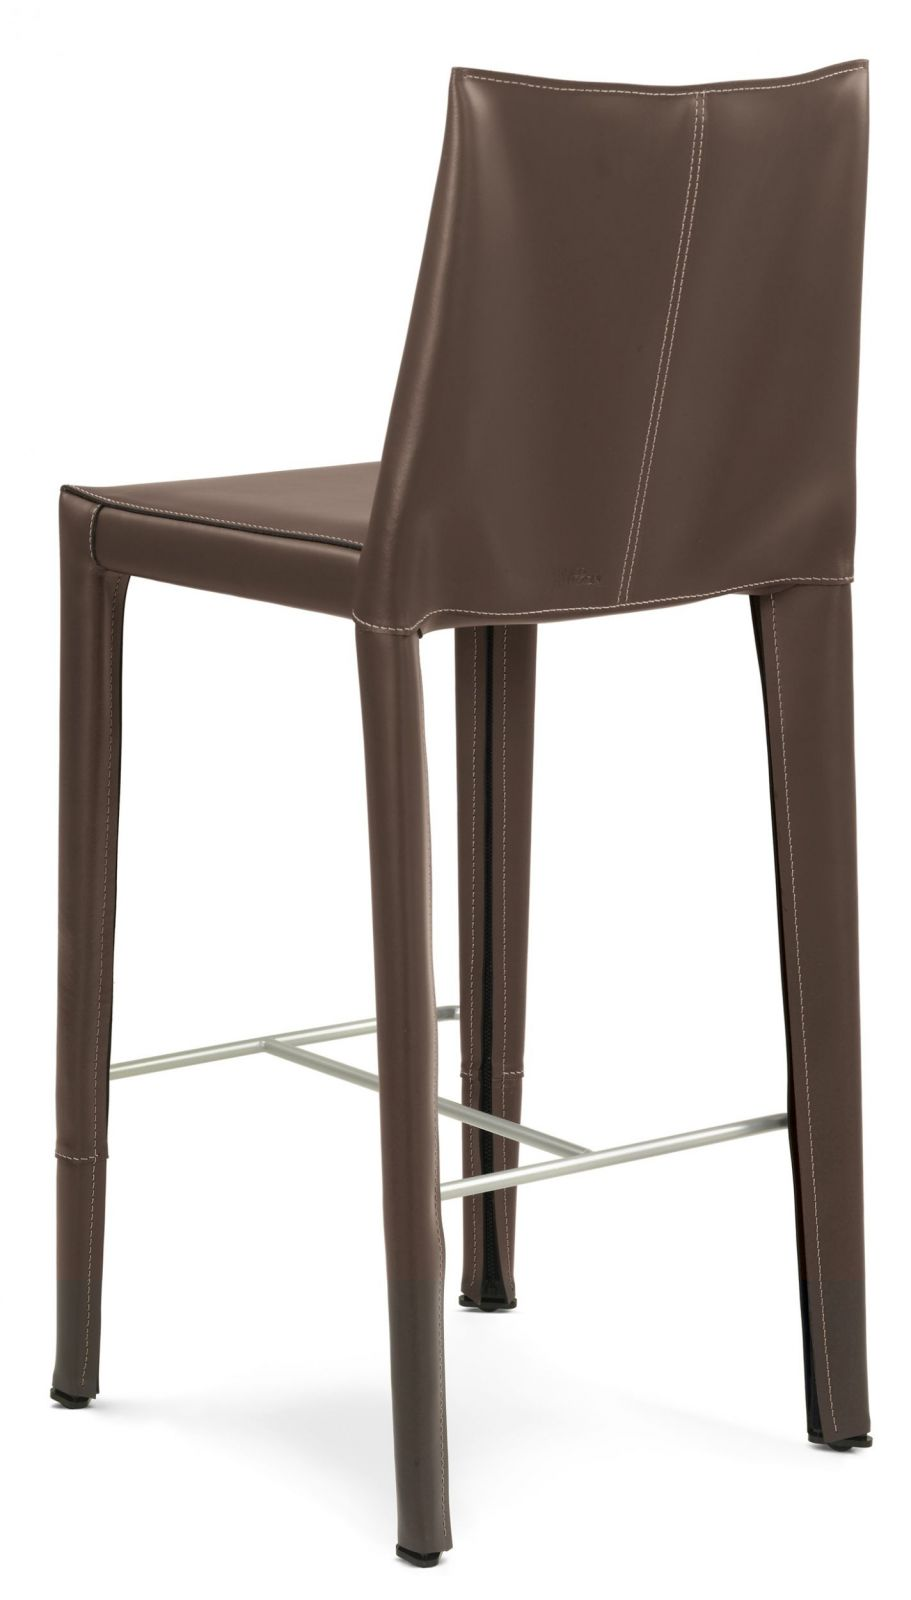 modern-bar-stools-Italian-furniture-large (14).jpg